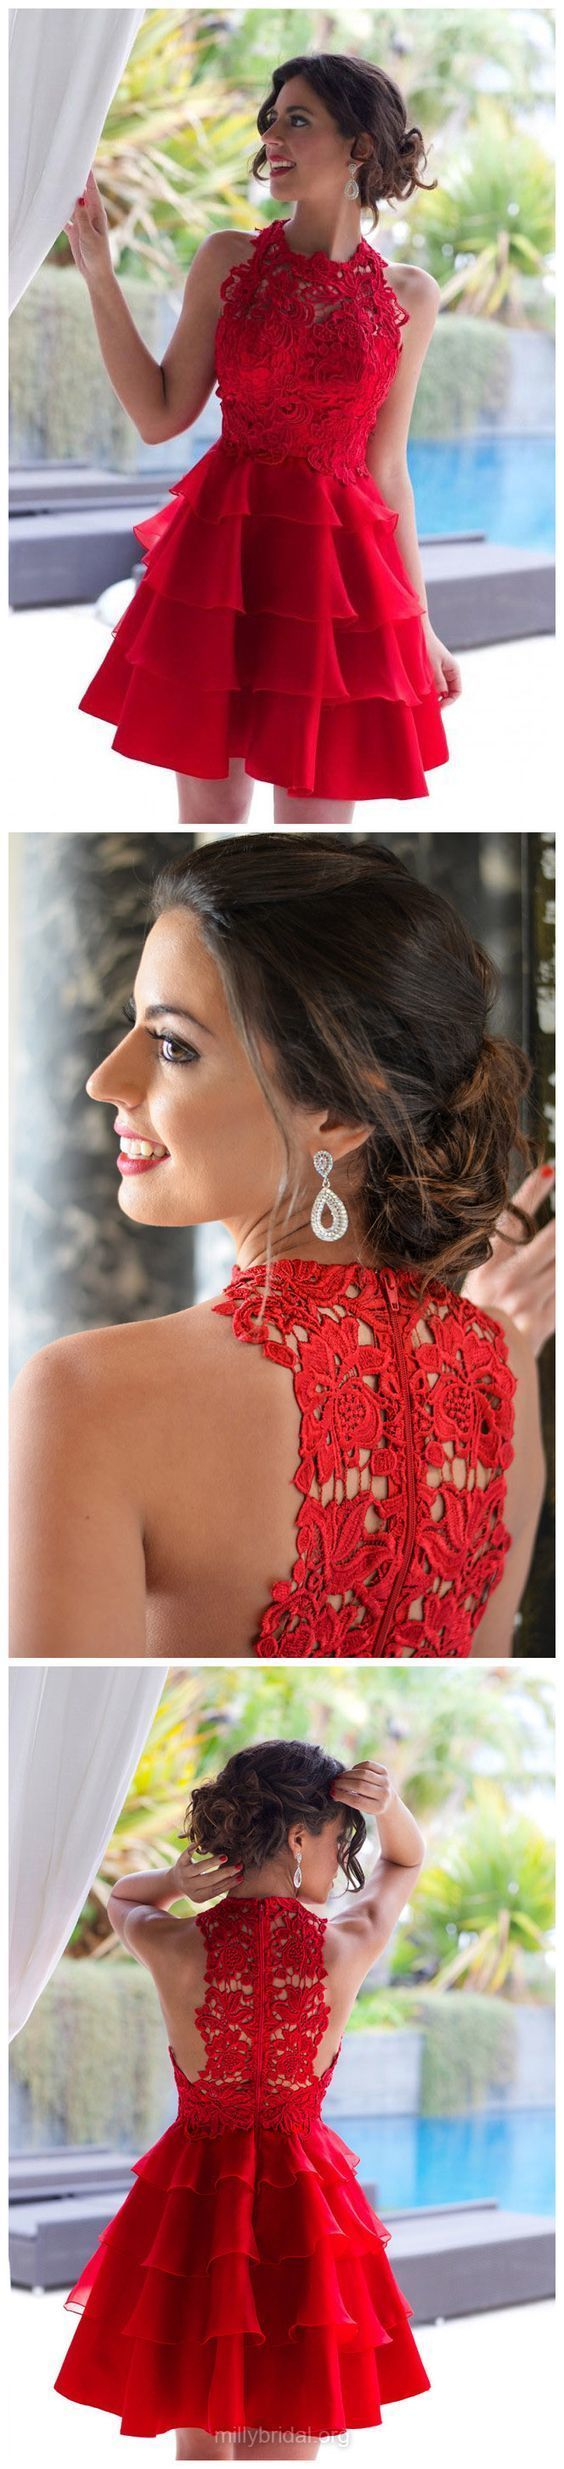 Short prom dresses red prom dresses lace prom dresses aline